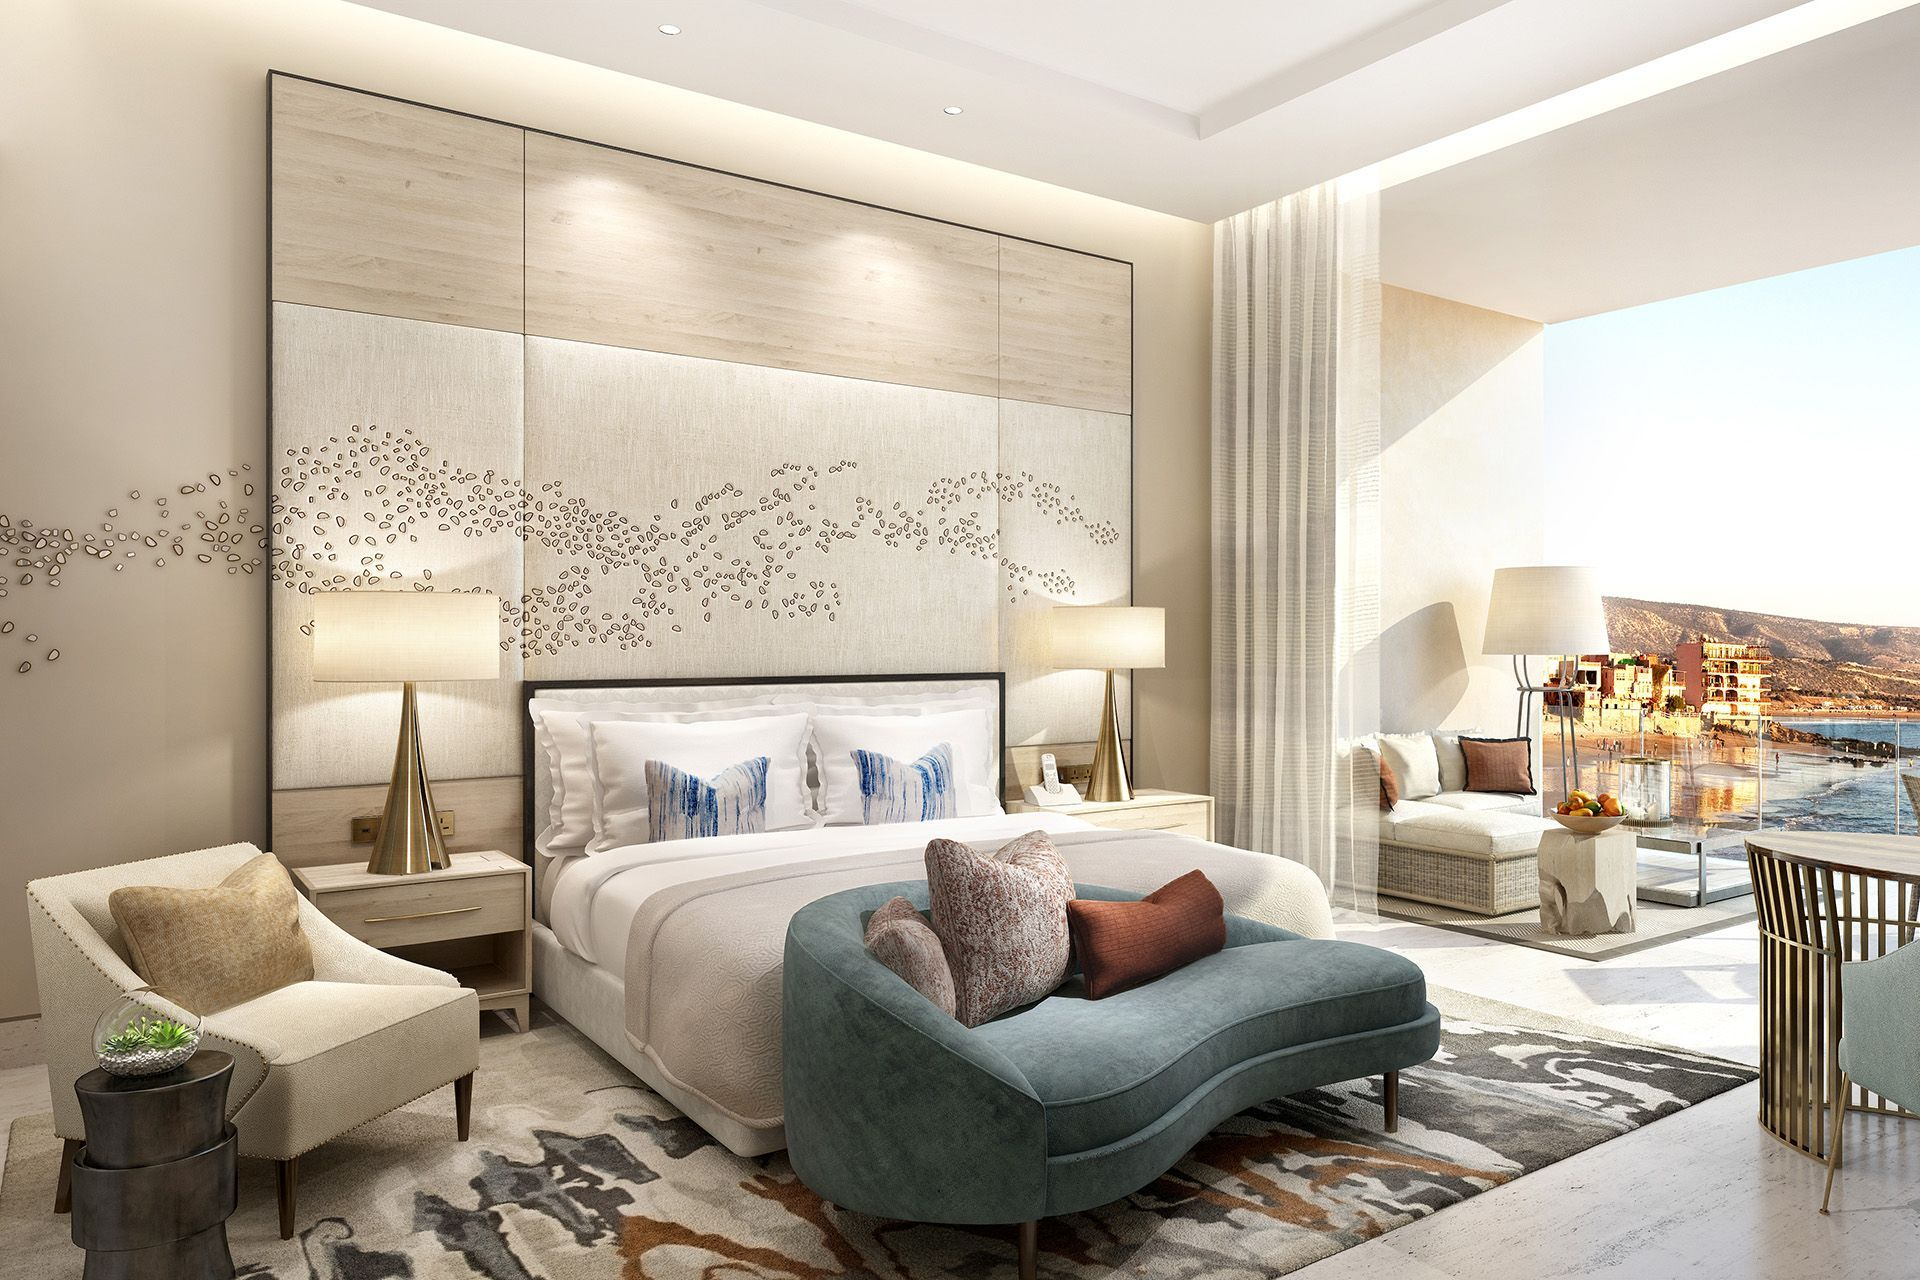 Four seasons taghazout interior designers wimberly for Beautiful bedrooms 2016